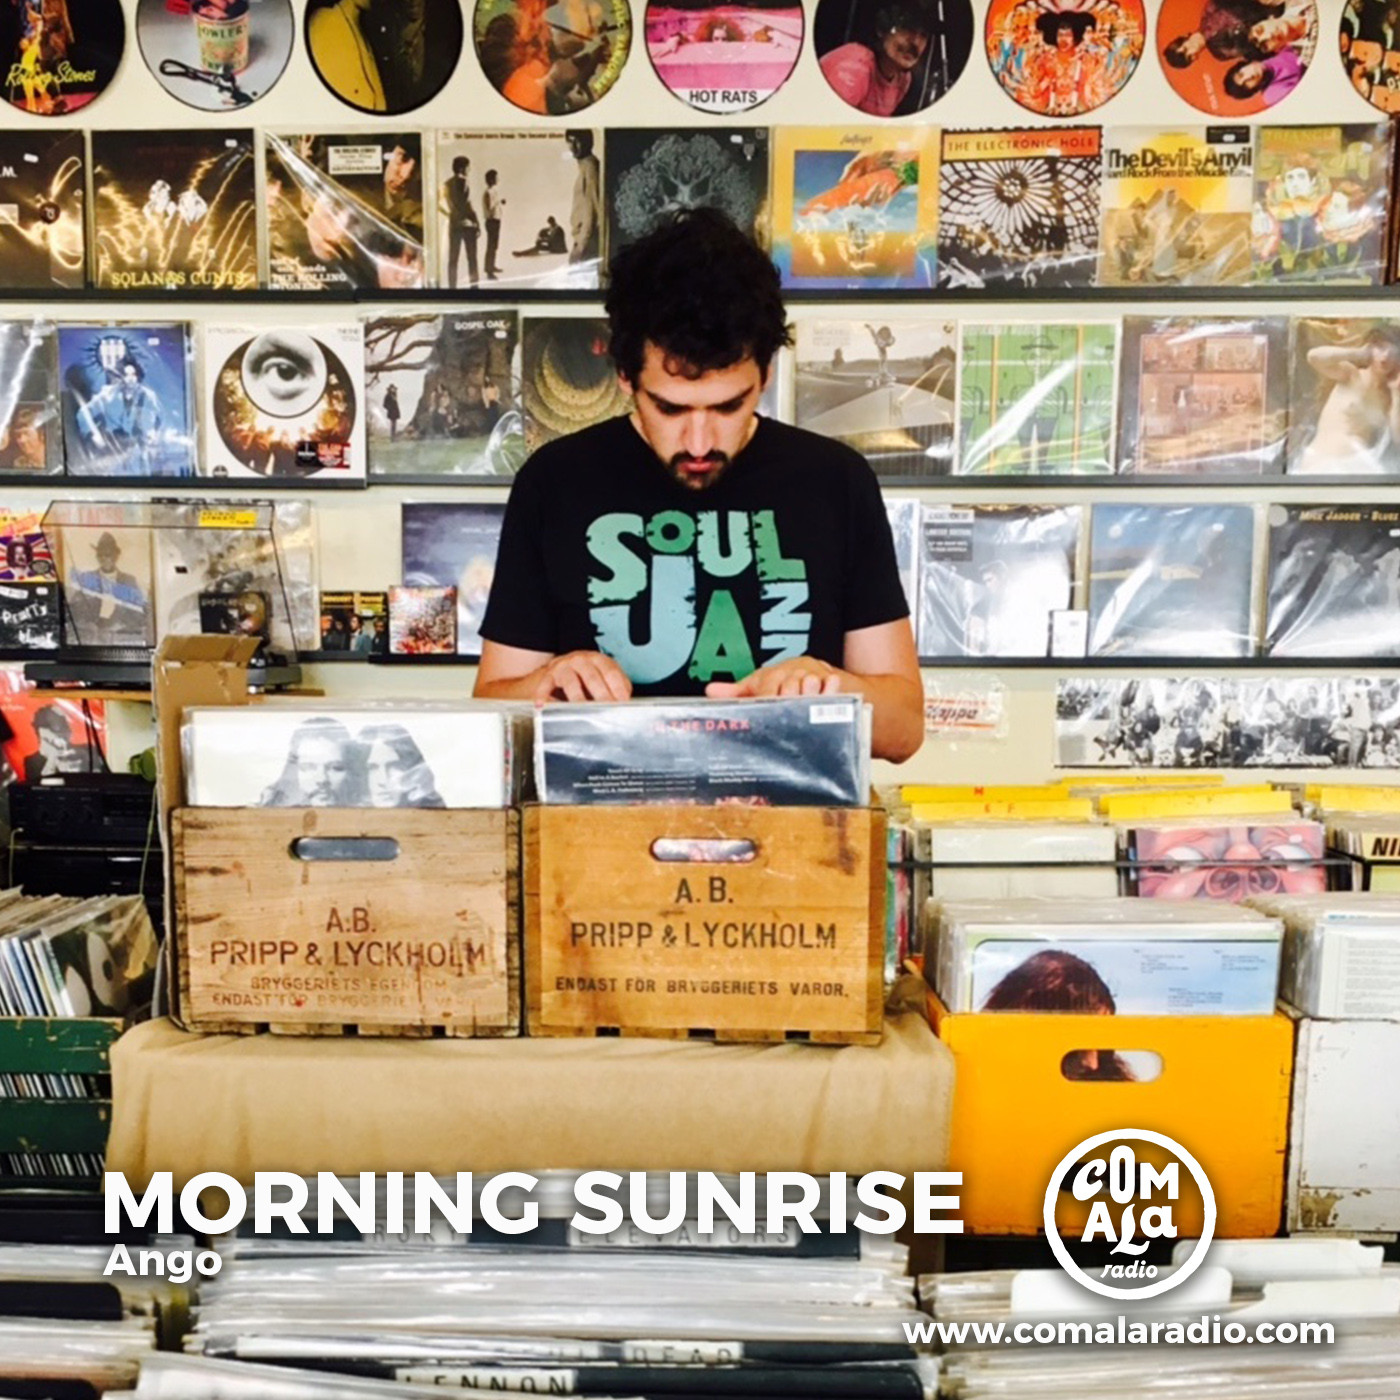 Ango - Morning Sunrise